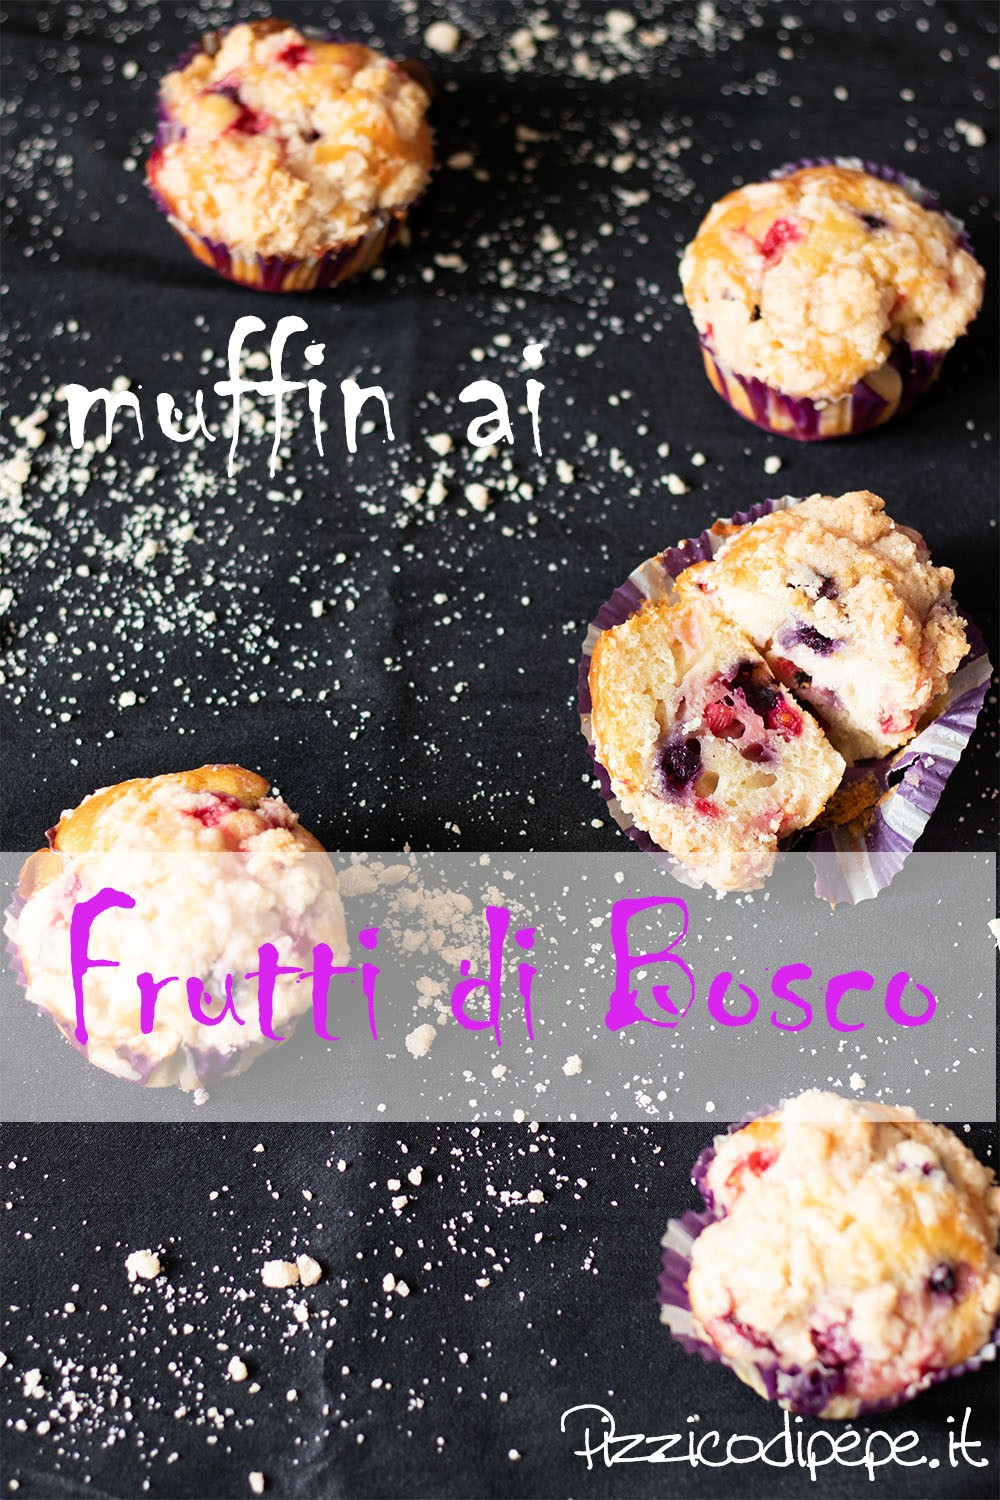 Muffin ai frutti di bosco Pizzicodipepe.it